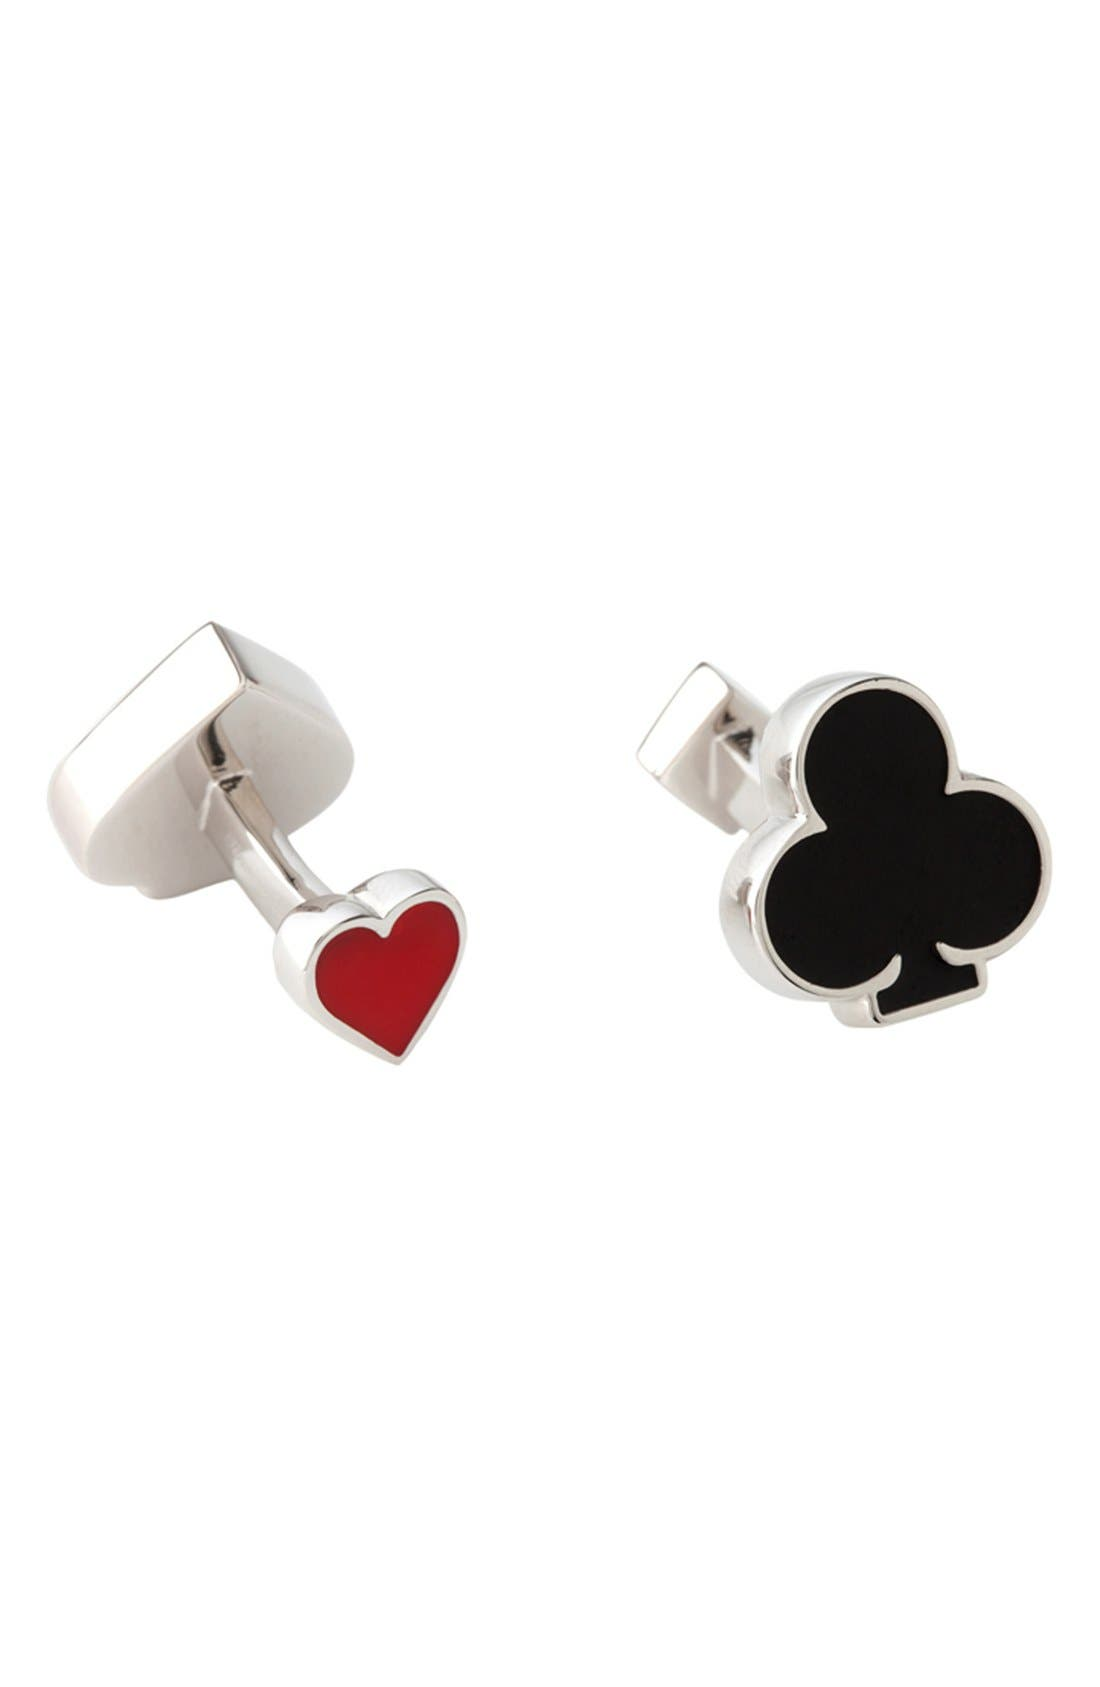 Card Suit Cuff Links,                         Main,                         color, 040